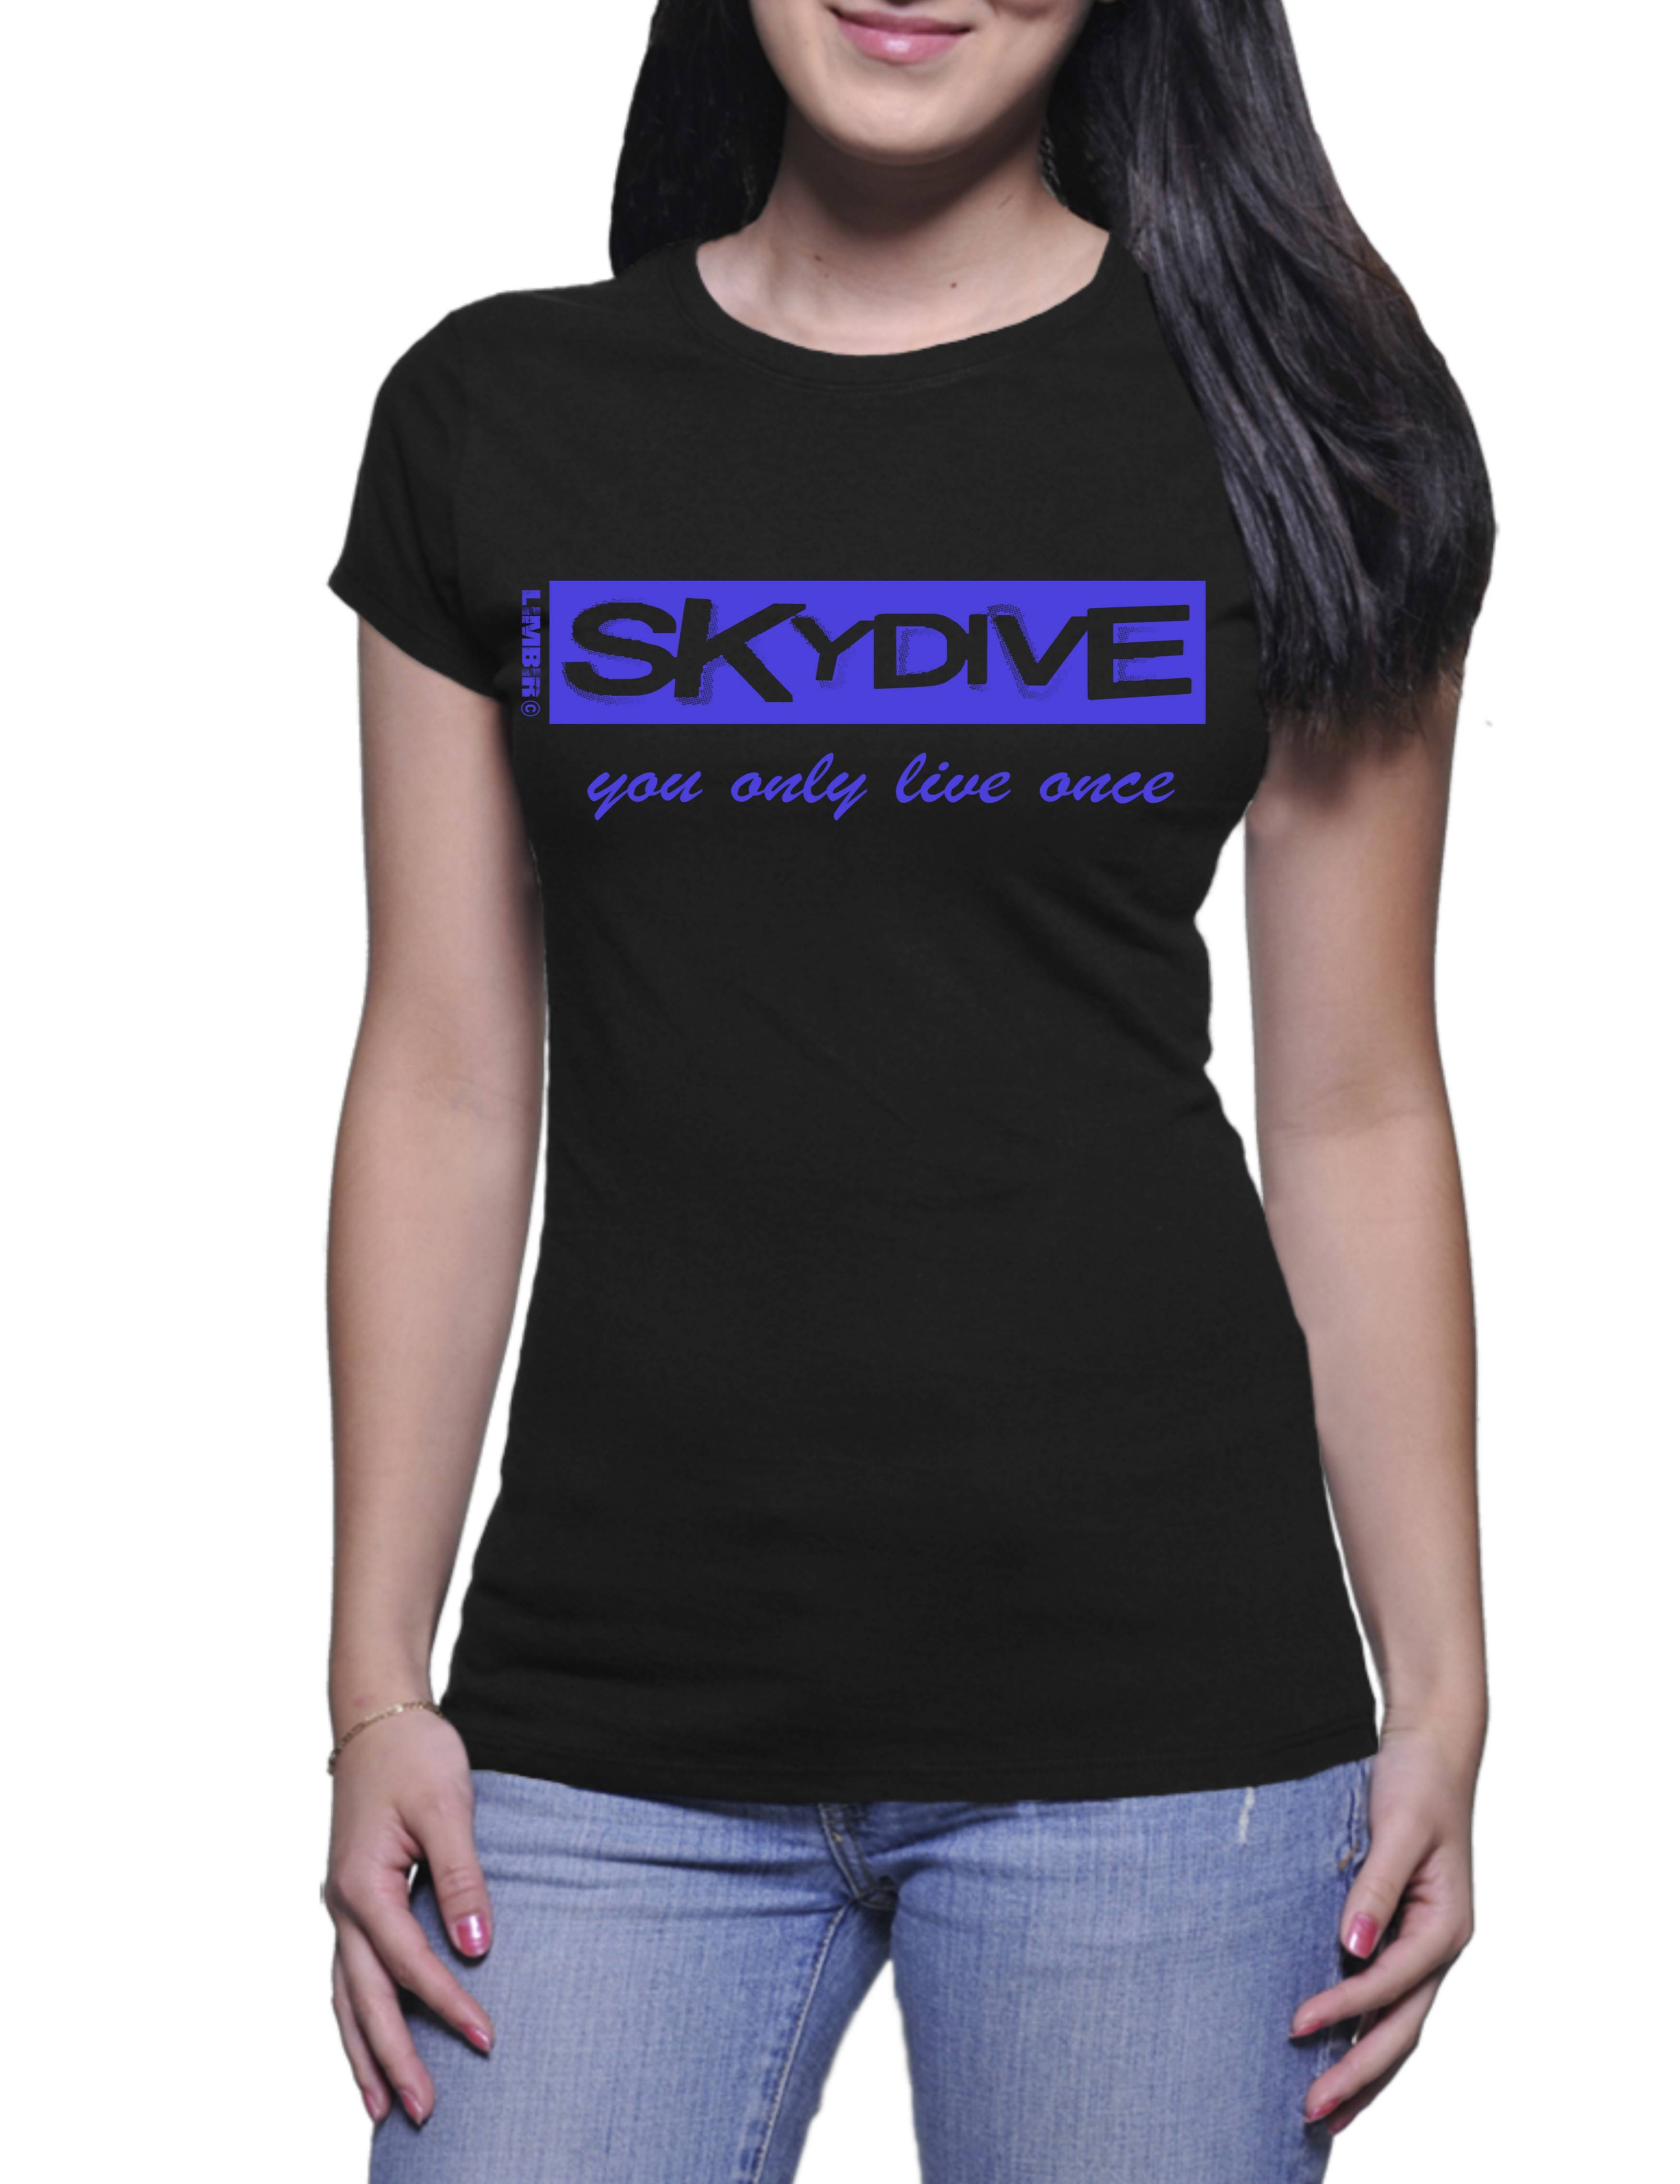 Skydive You Only Live Once - Ladies t-shirt (Limbir FlyWear) D3